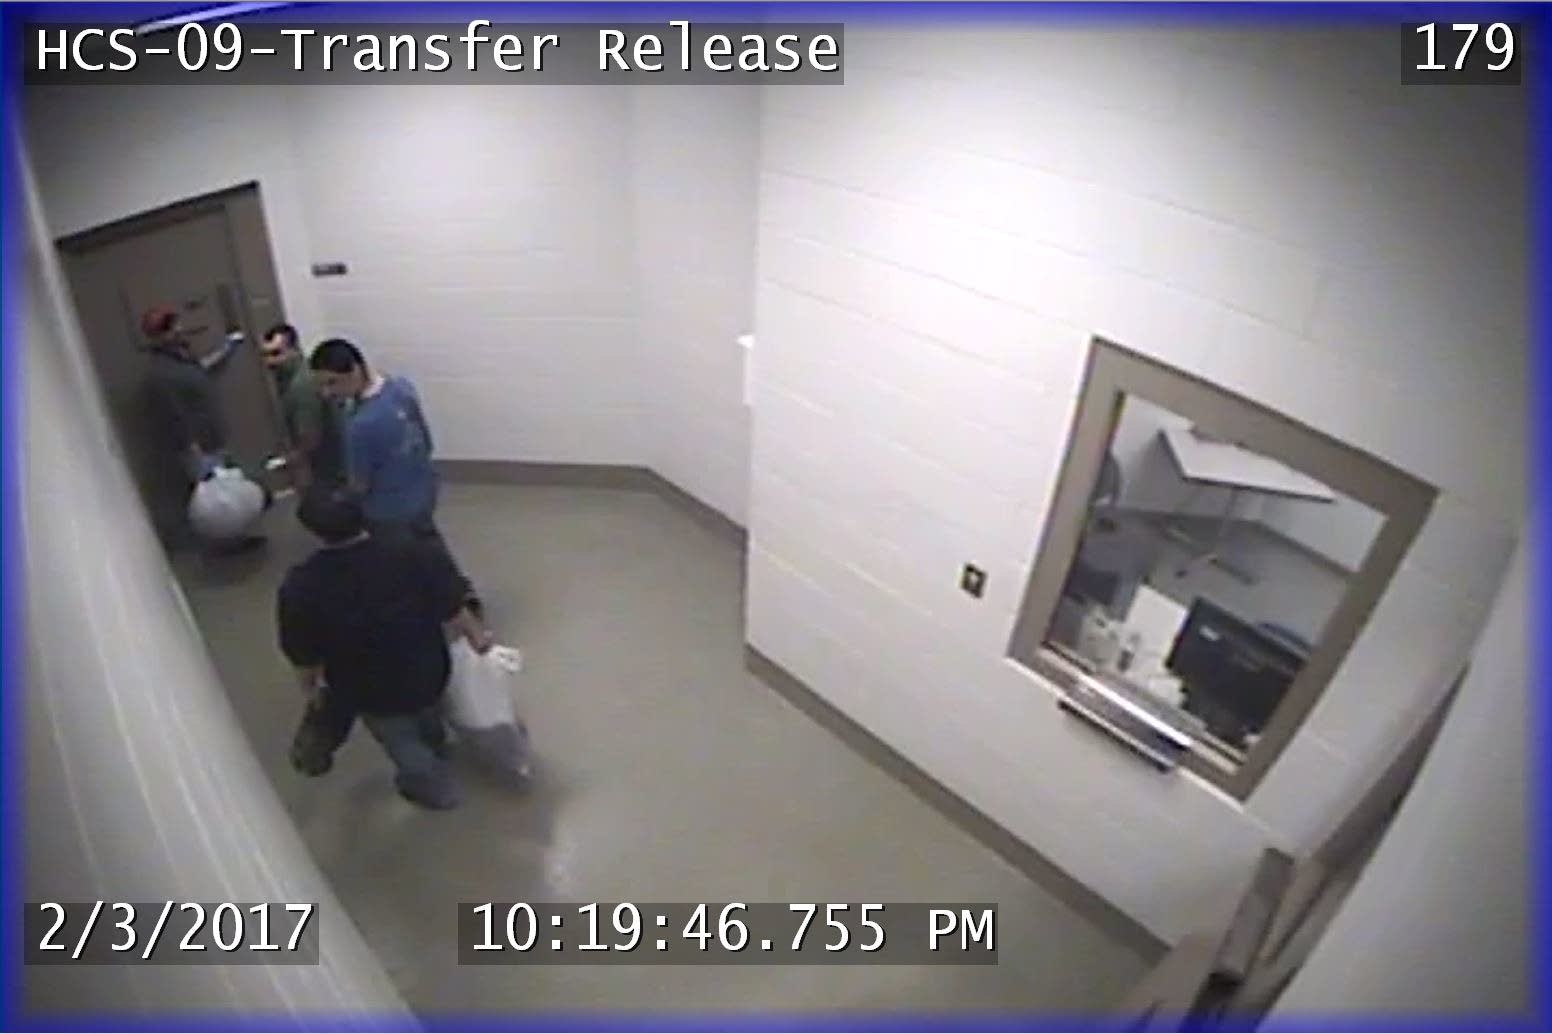 Vicente Guerrero-Fernandez and Julio Salazar Vega leaving jail